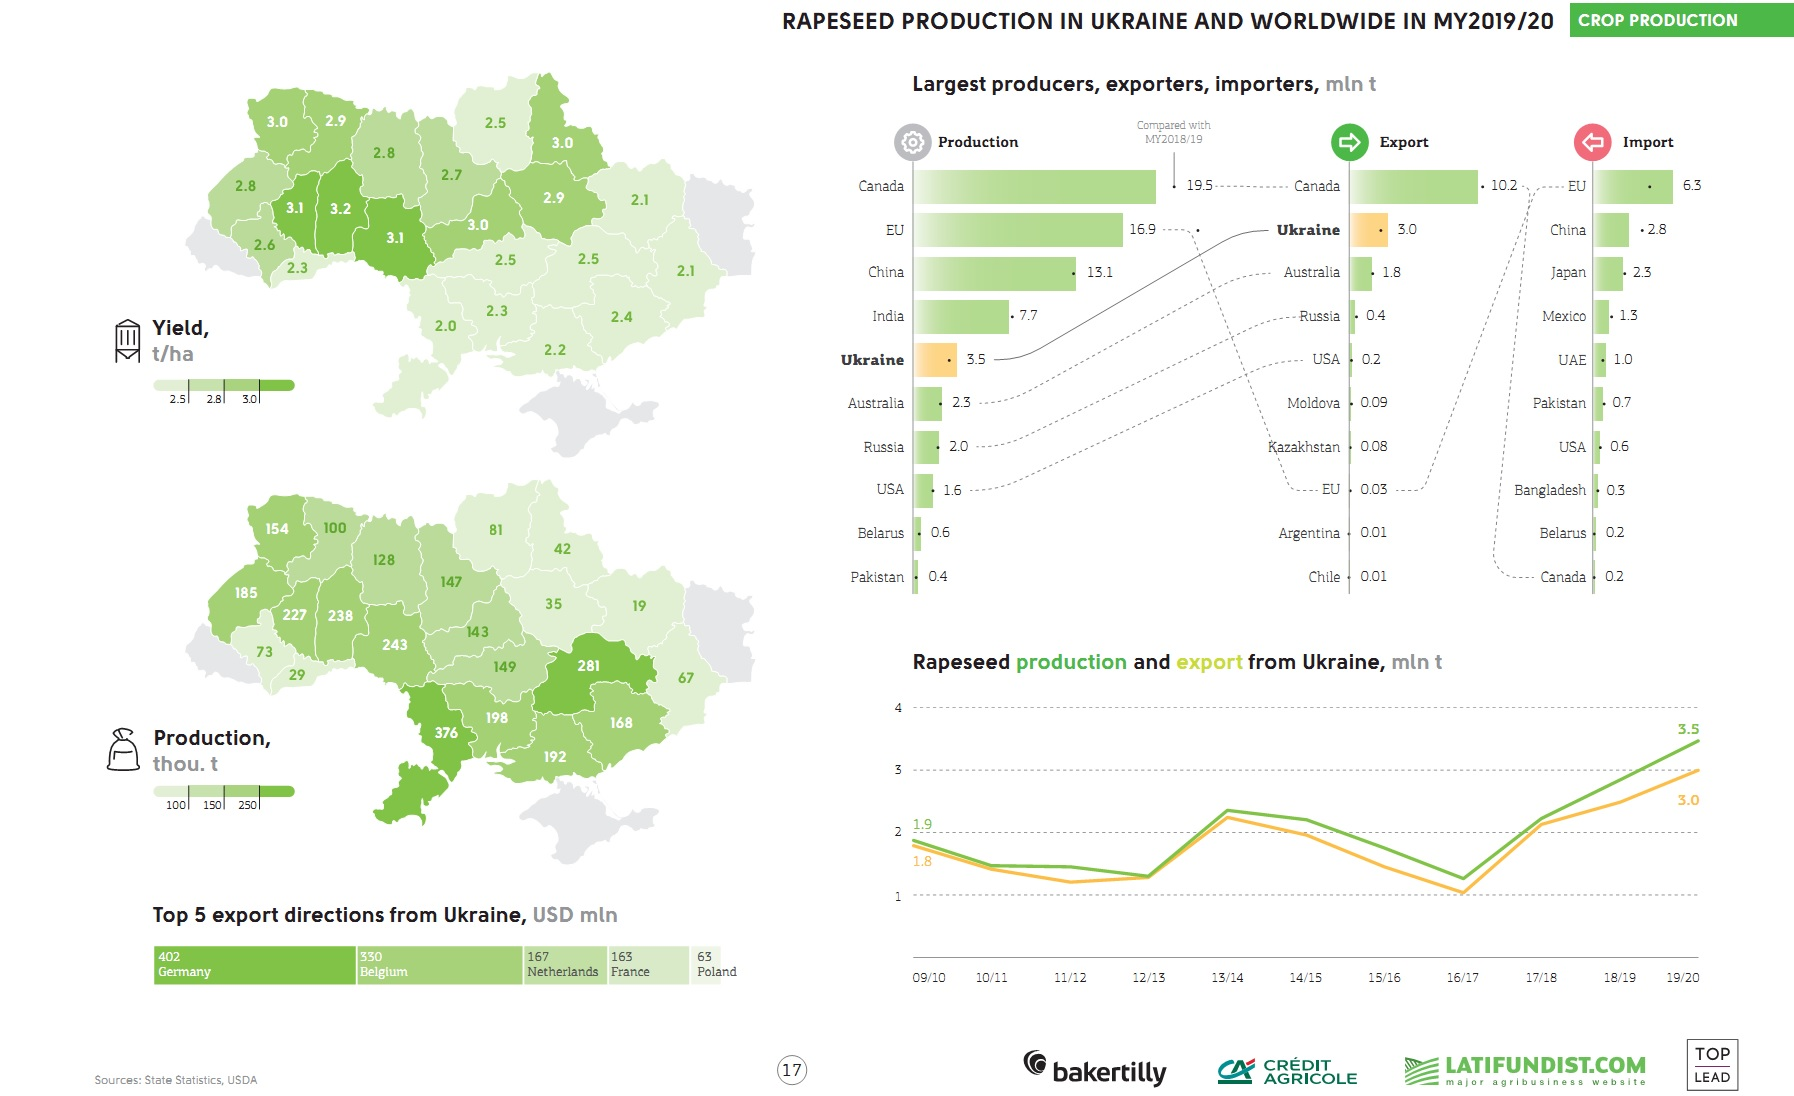 Rapeseed production in Ukraine and worldwide (click for full resolution)